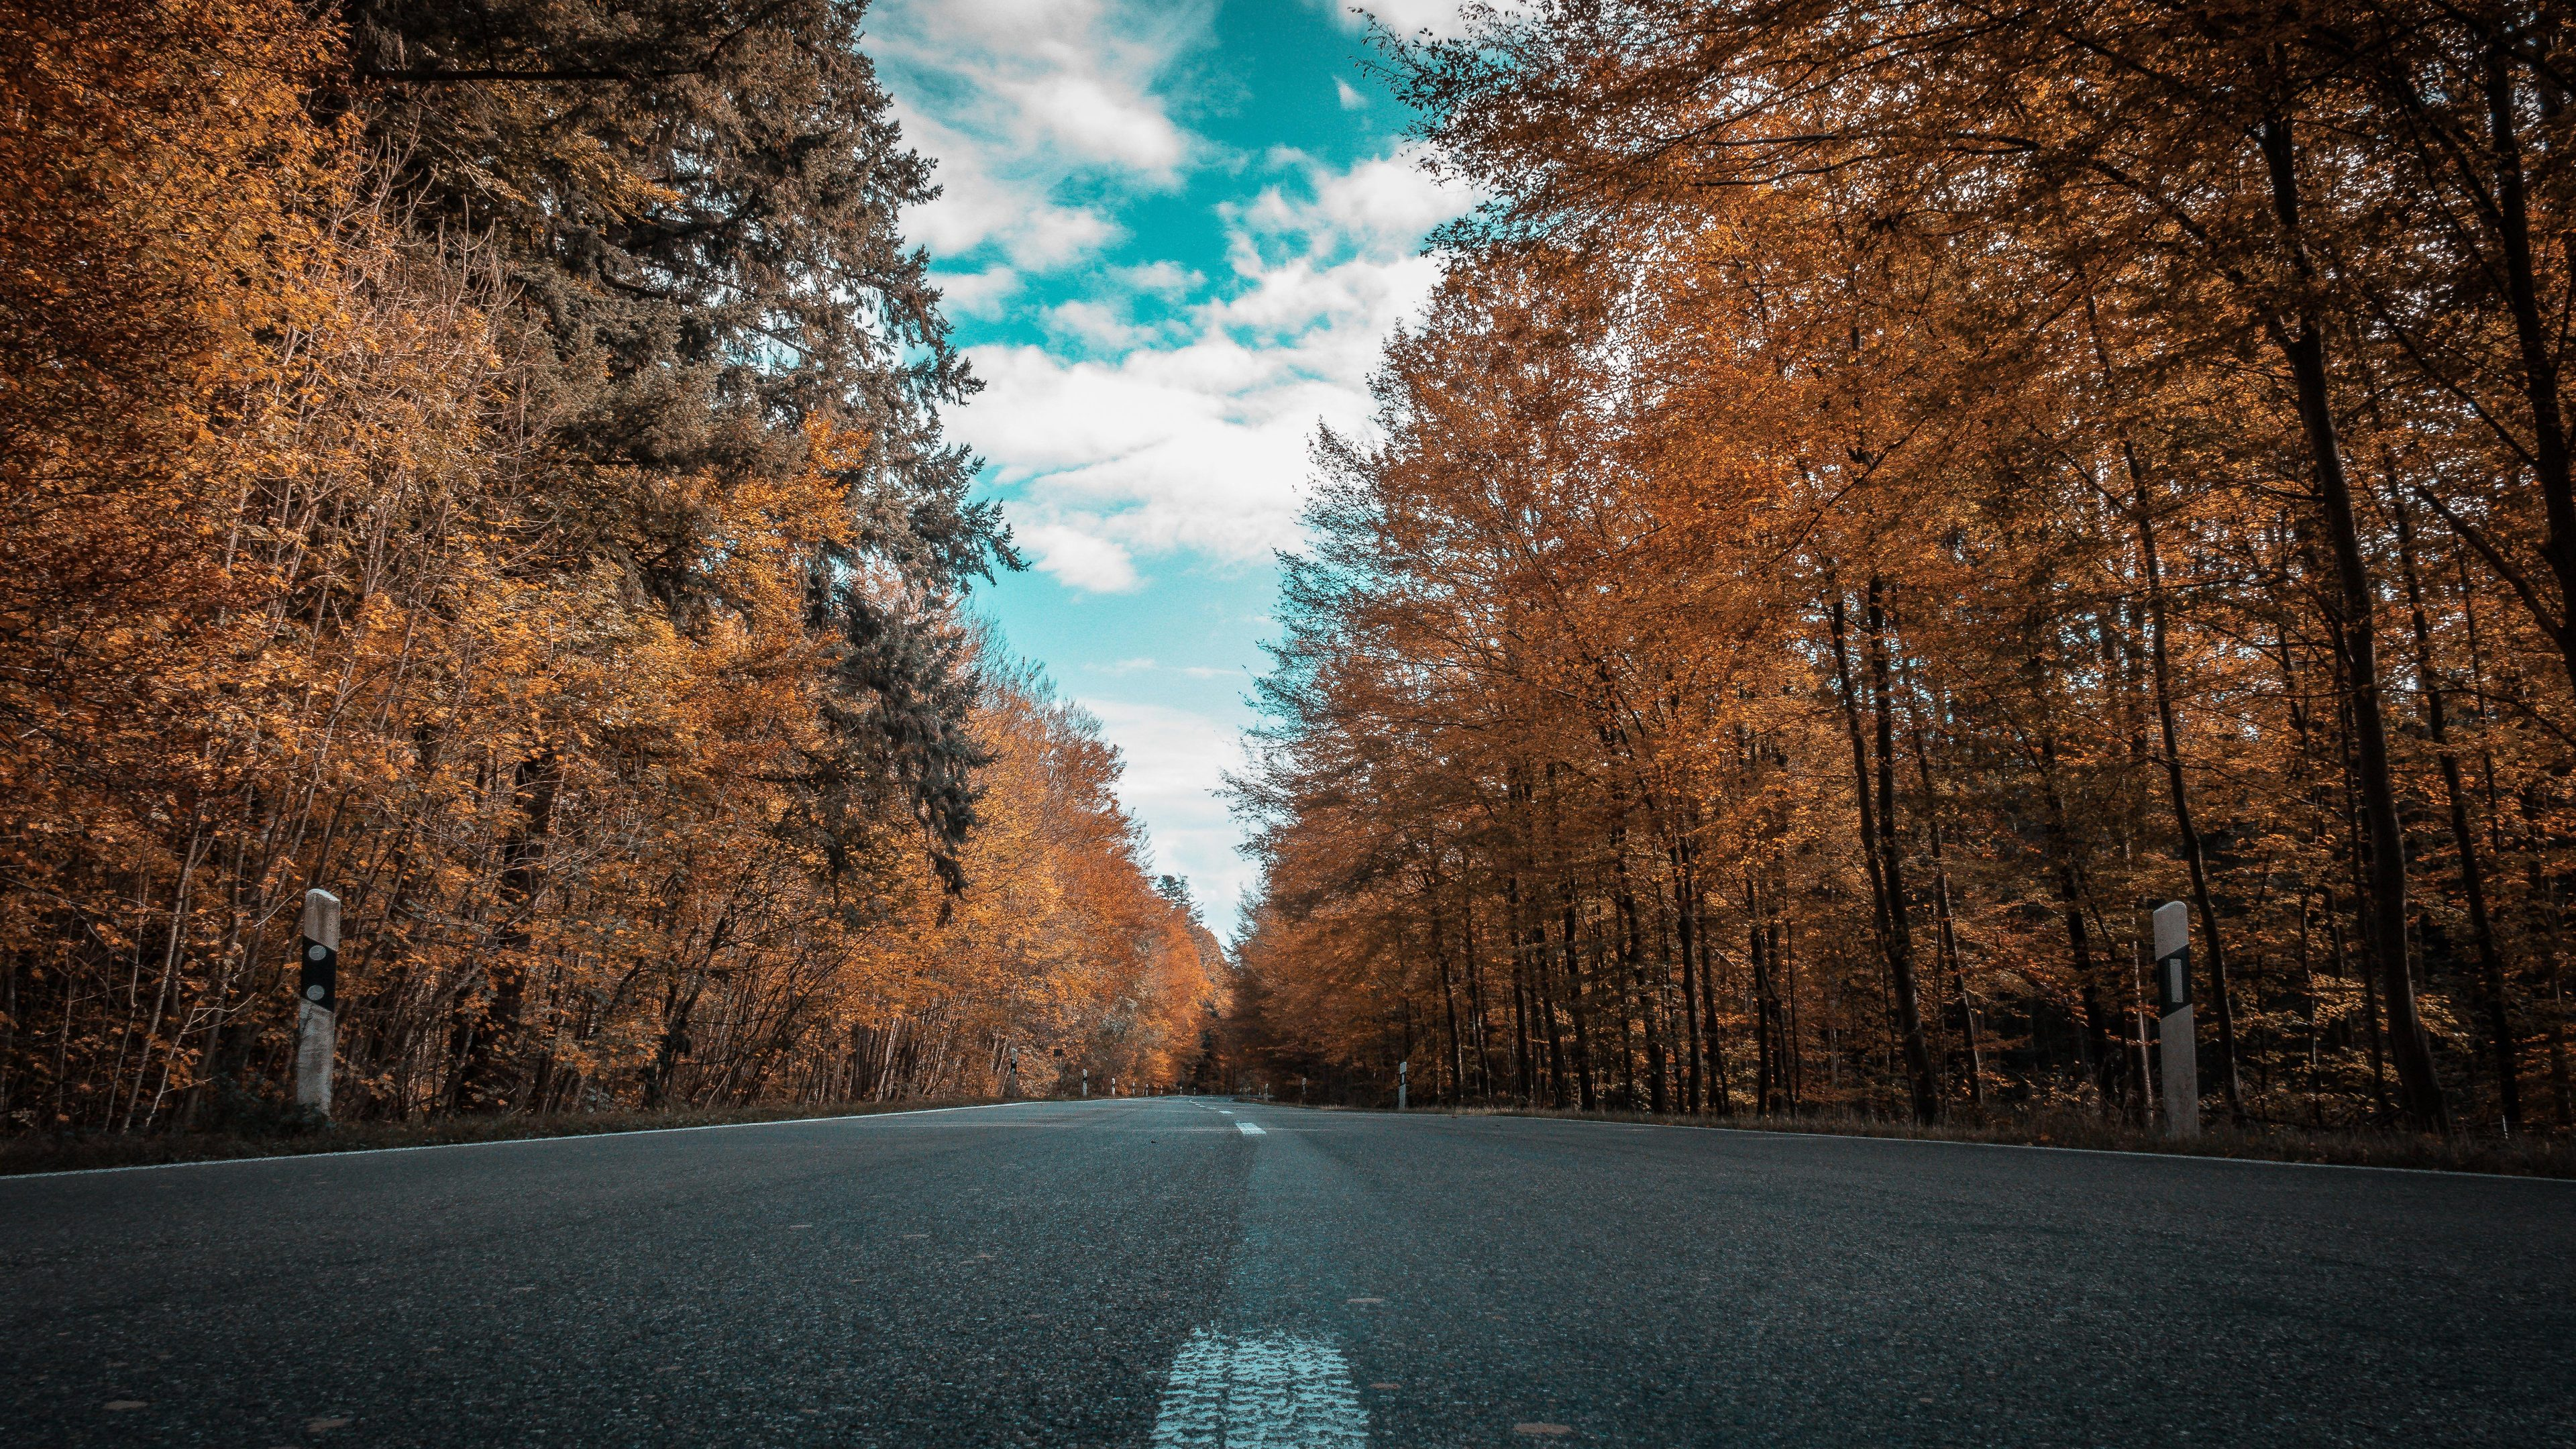 Wallpaper 4k Alone Road Forest Autumn Golden Trees Ultra 4k 4k Wallpapers 5k Wallpapers Autumn Wallpapers Forest Wallpapers Hd Wallpapers Road Wallpapers Trees Wallpapers